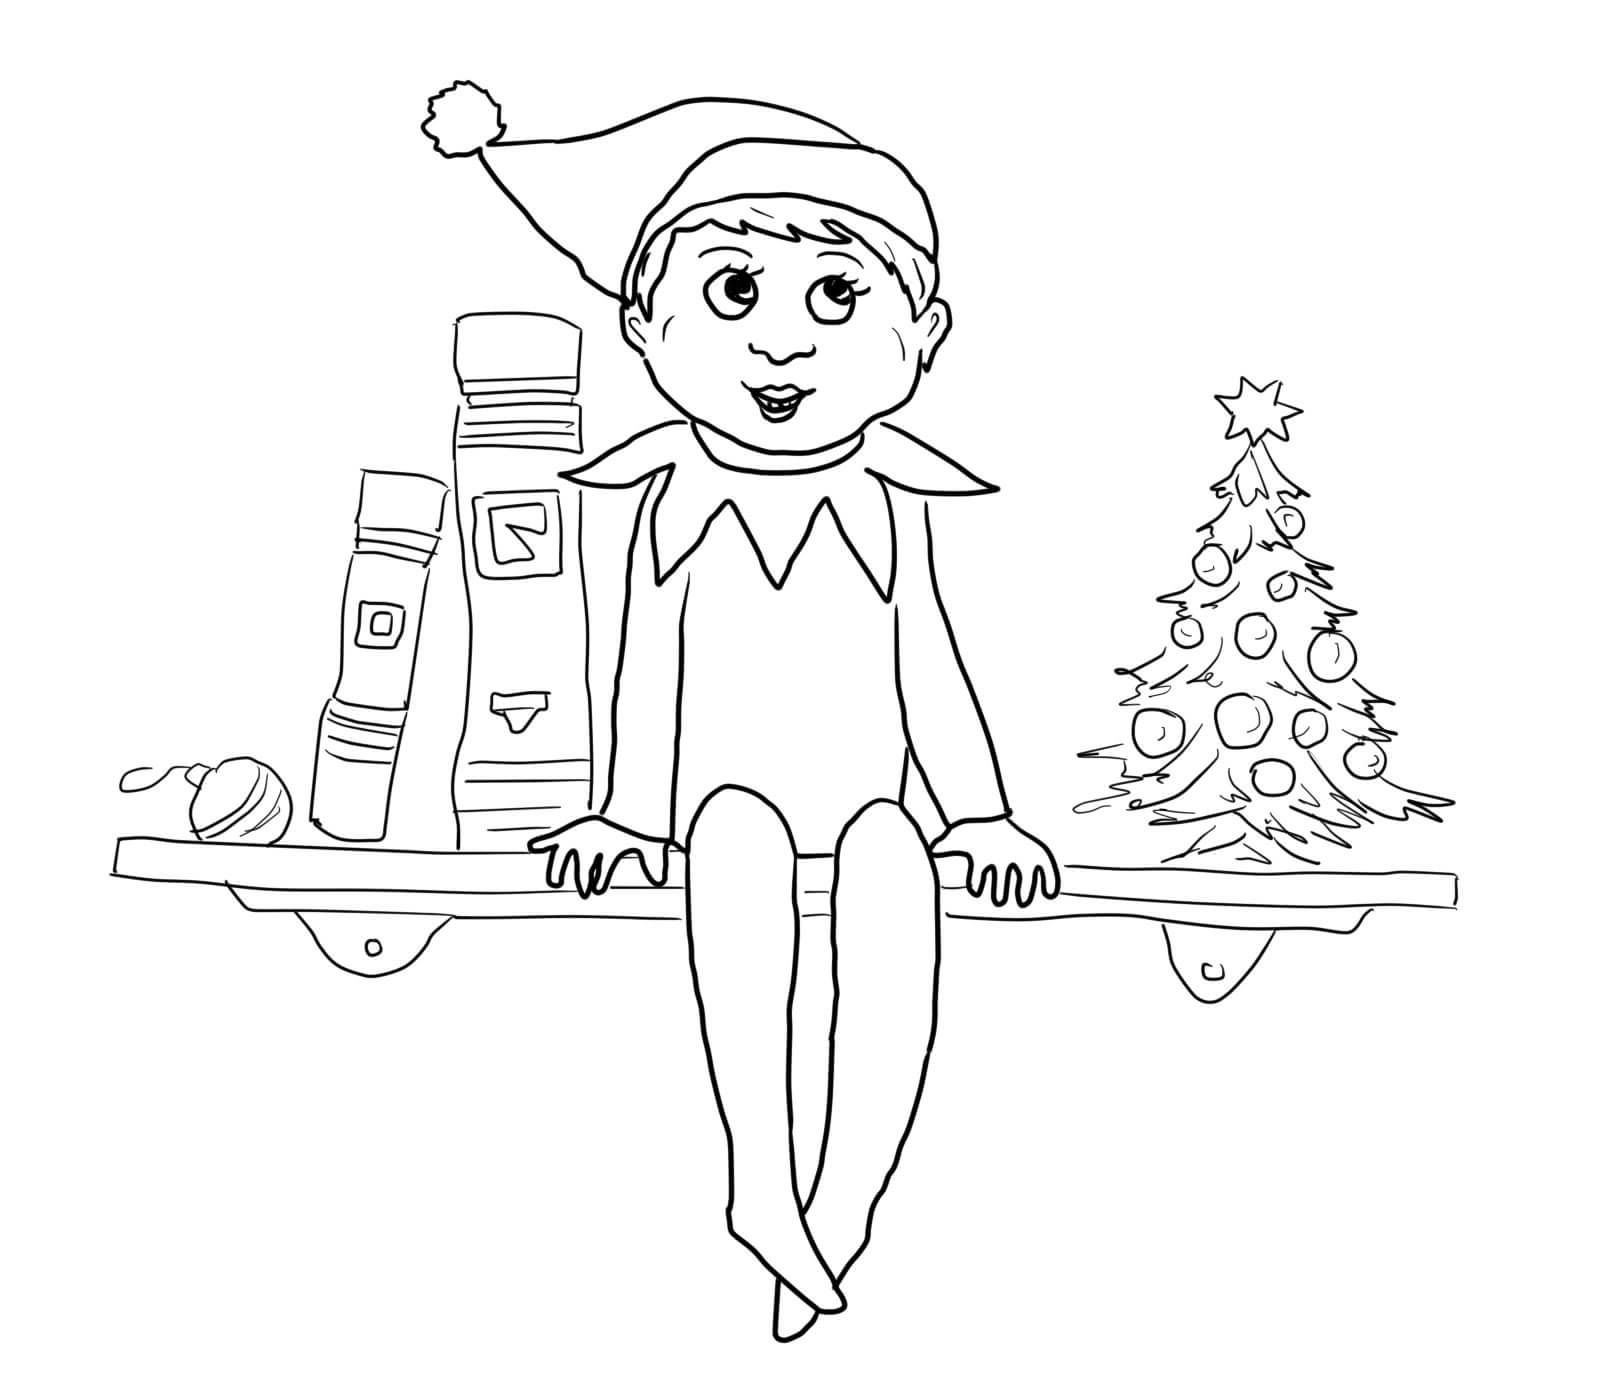 elf on the shelf coloring book eelf on the shelf printable christmas coloring pages on shelf book elf the coloring